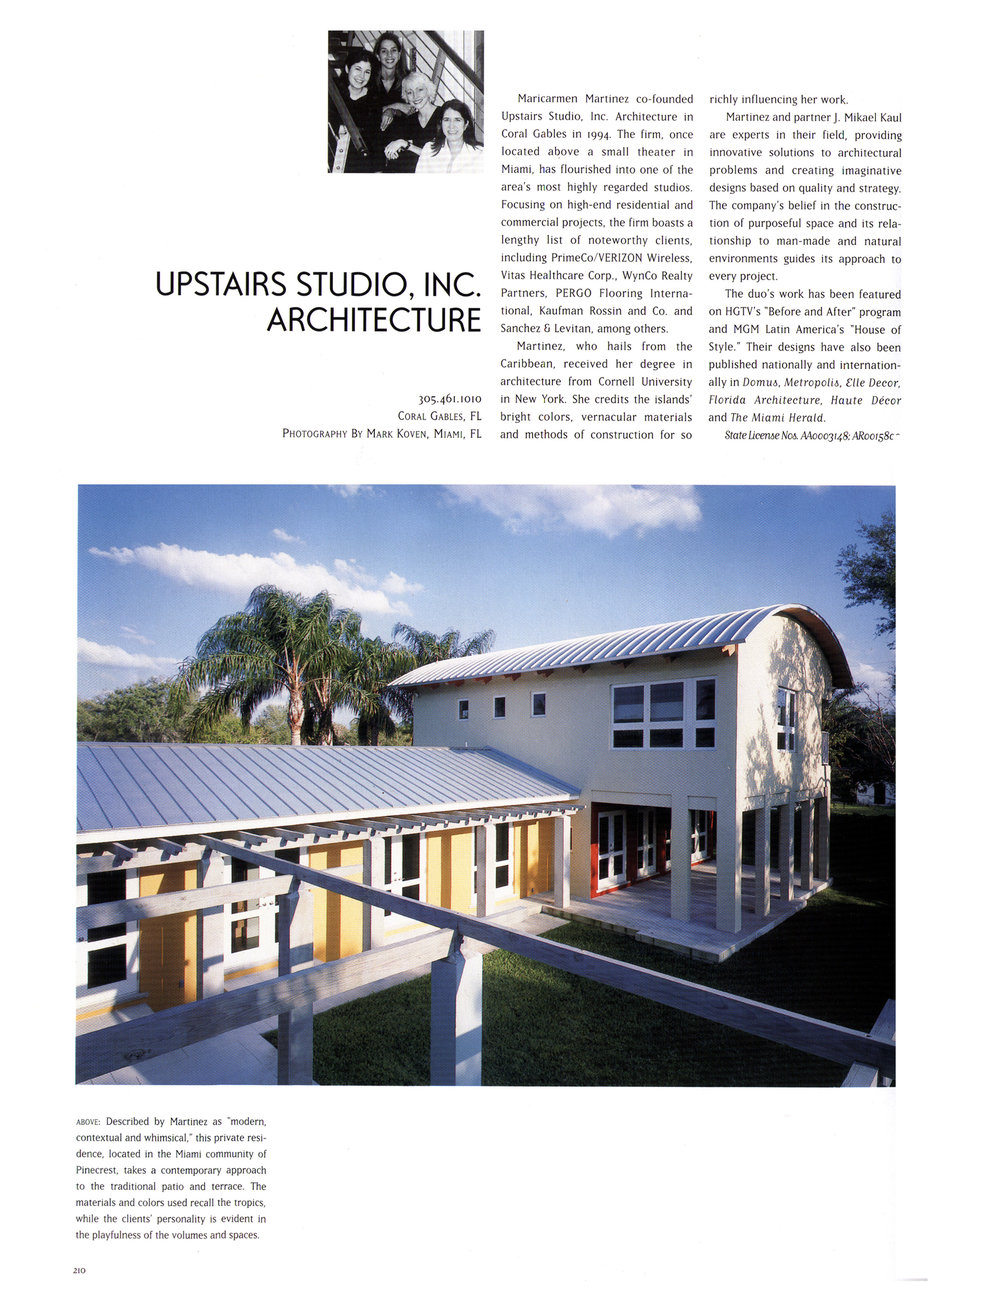 florida design book page 1.JPG